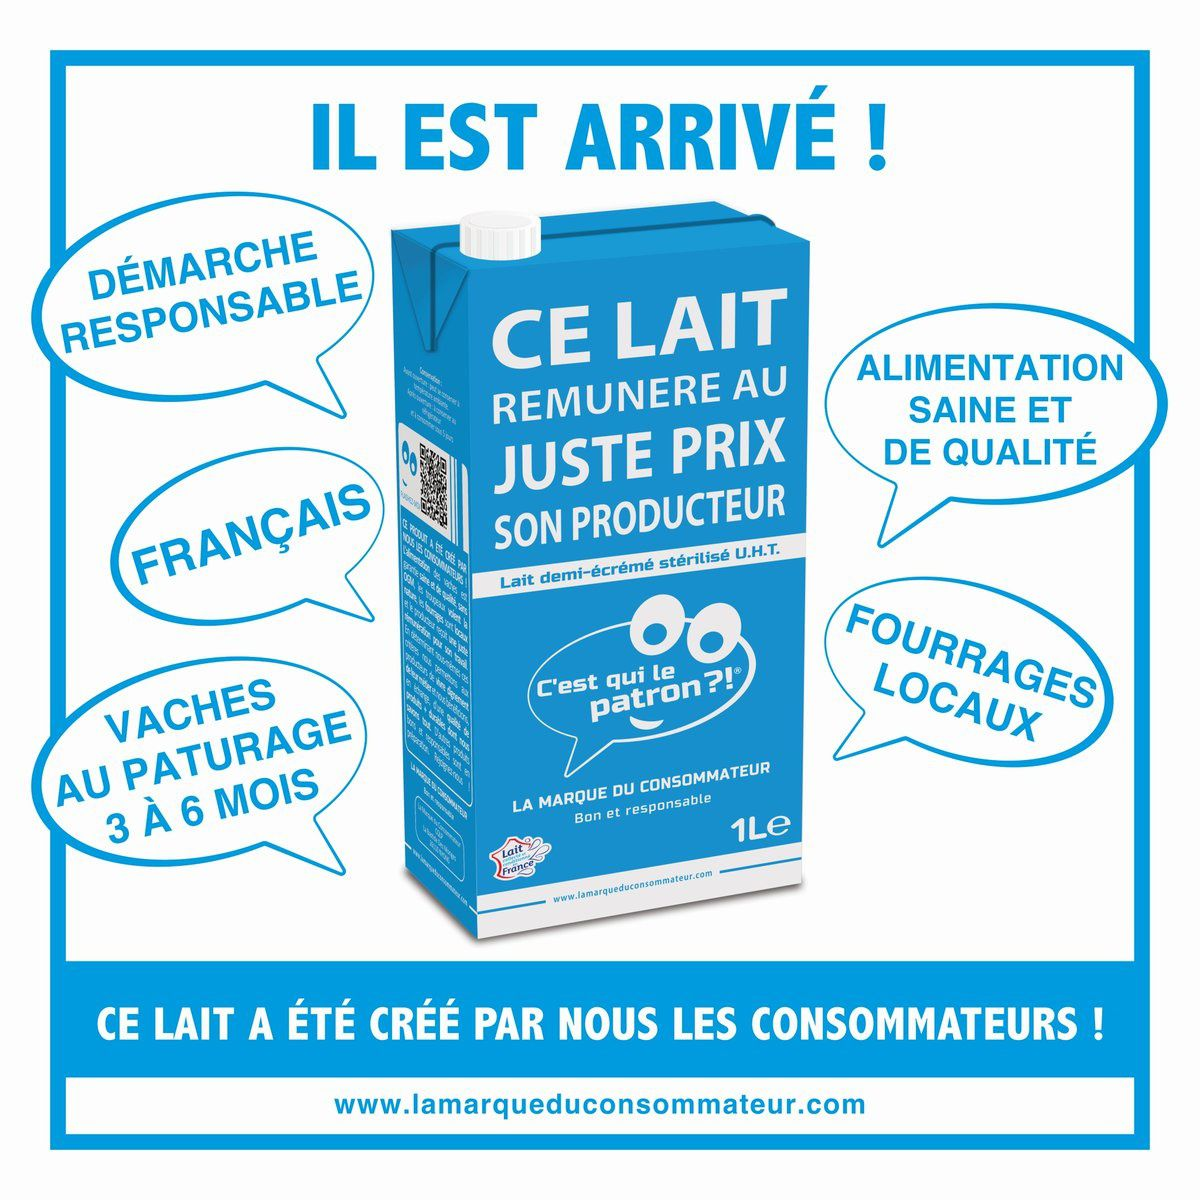 Changer notre consommation